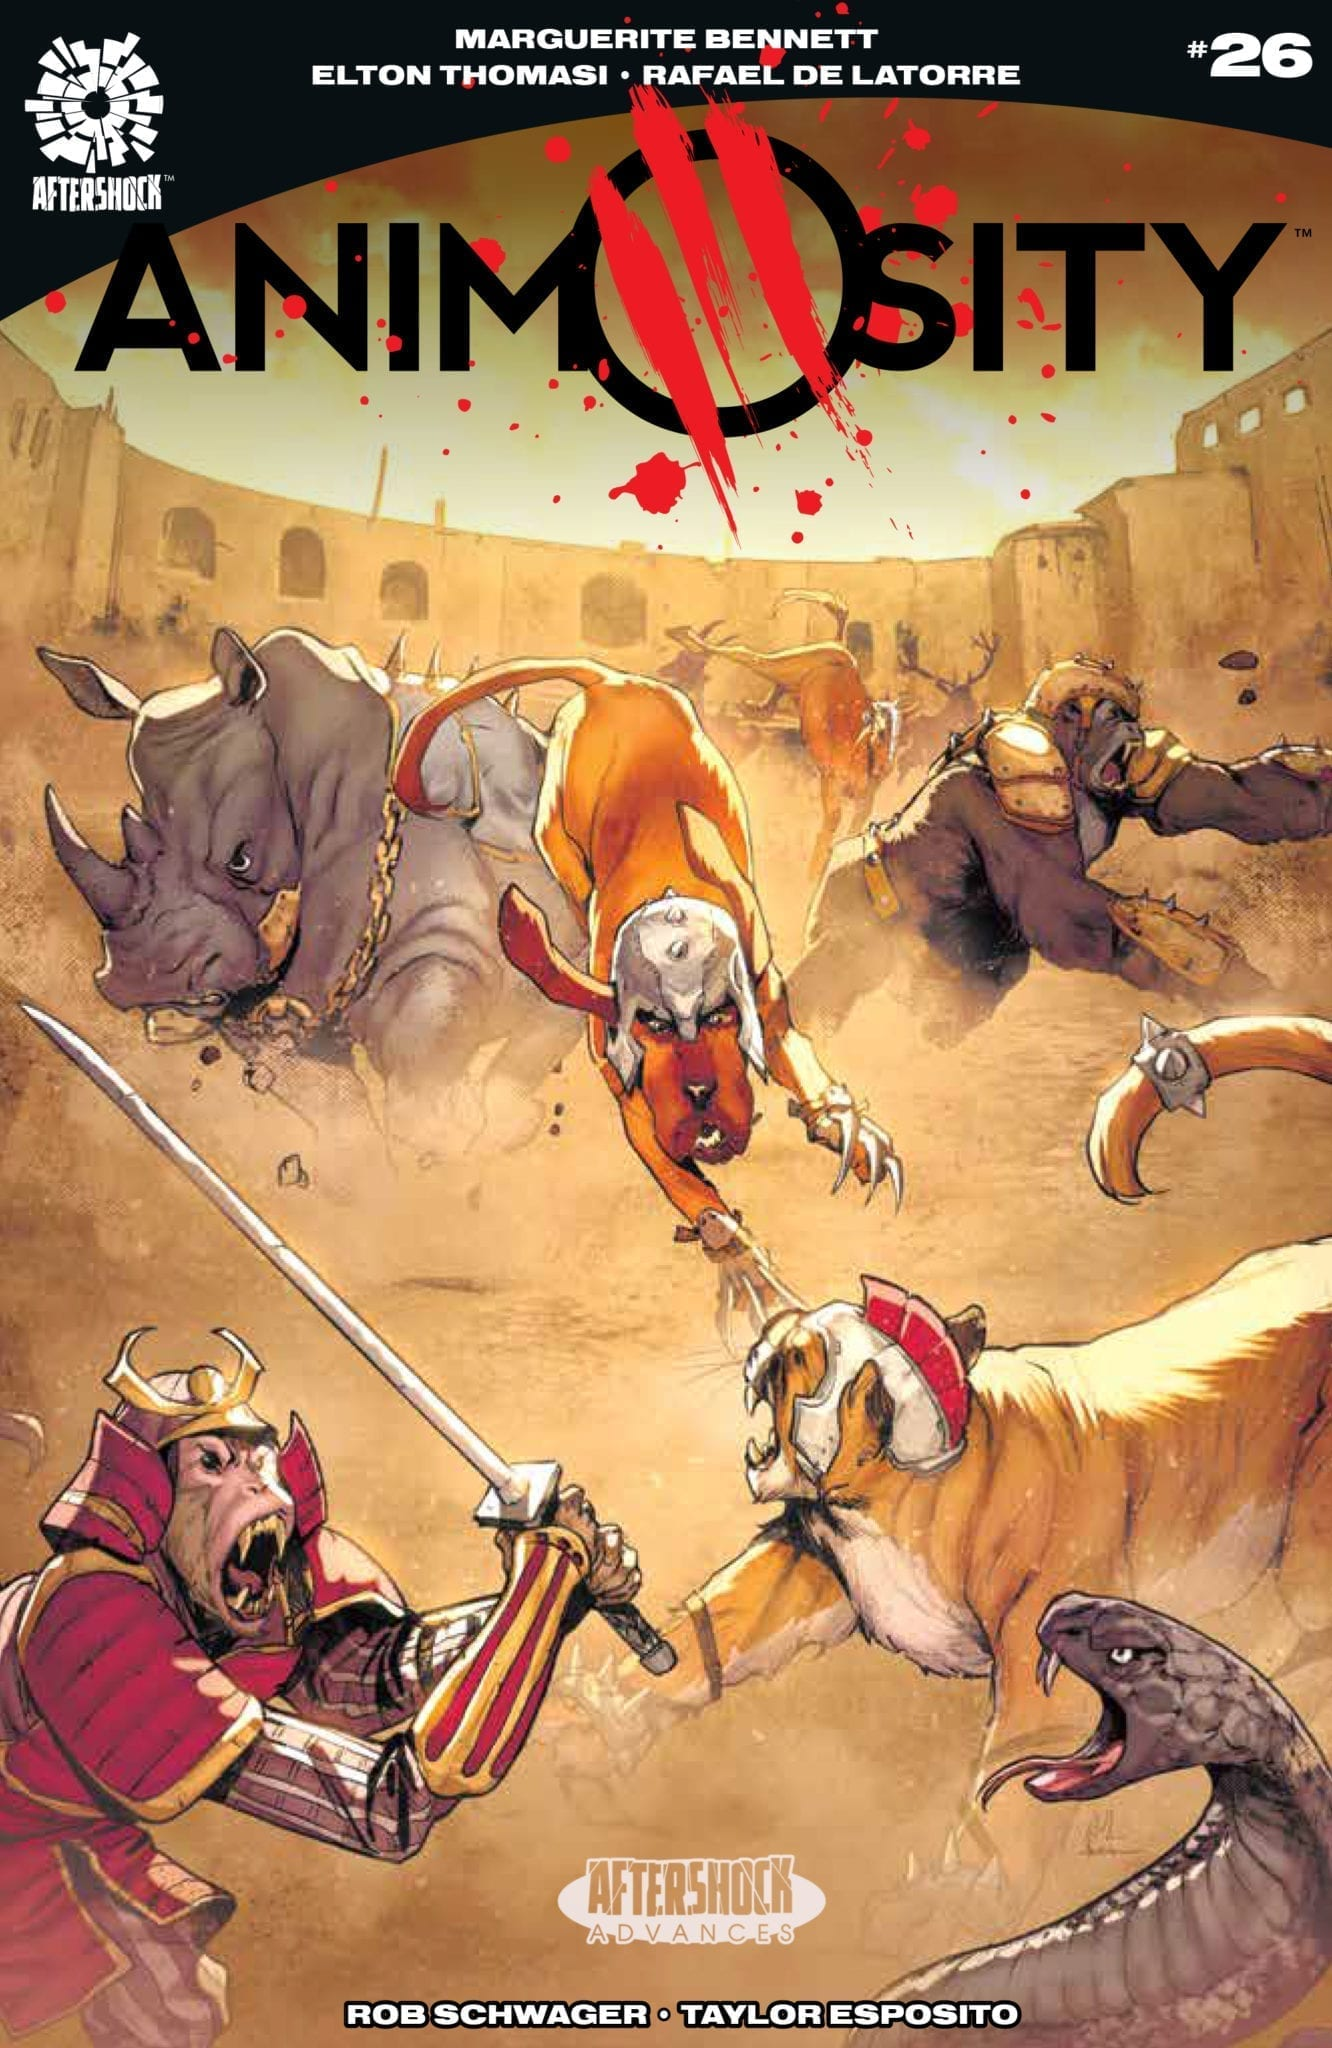 aftershock comics comic books exclusive preview animosity #26